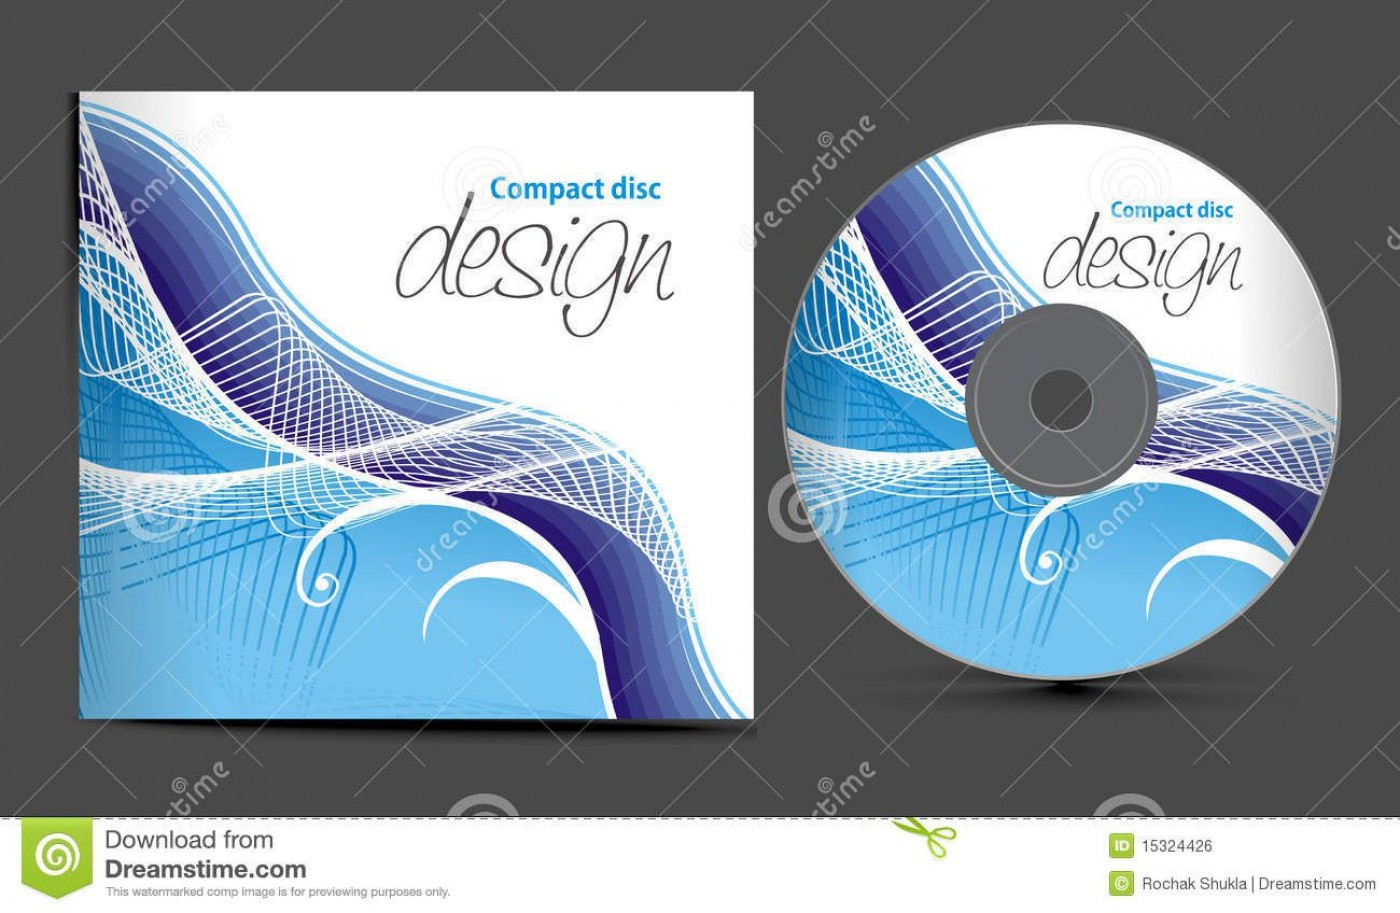 004 Breathtaking Music Cd Cover Design Template Free Download Concept 1400